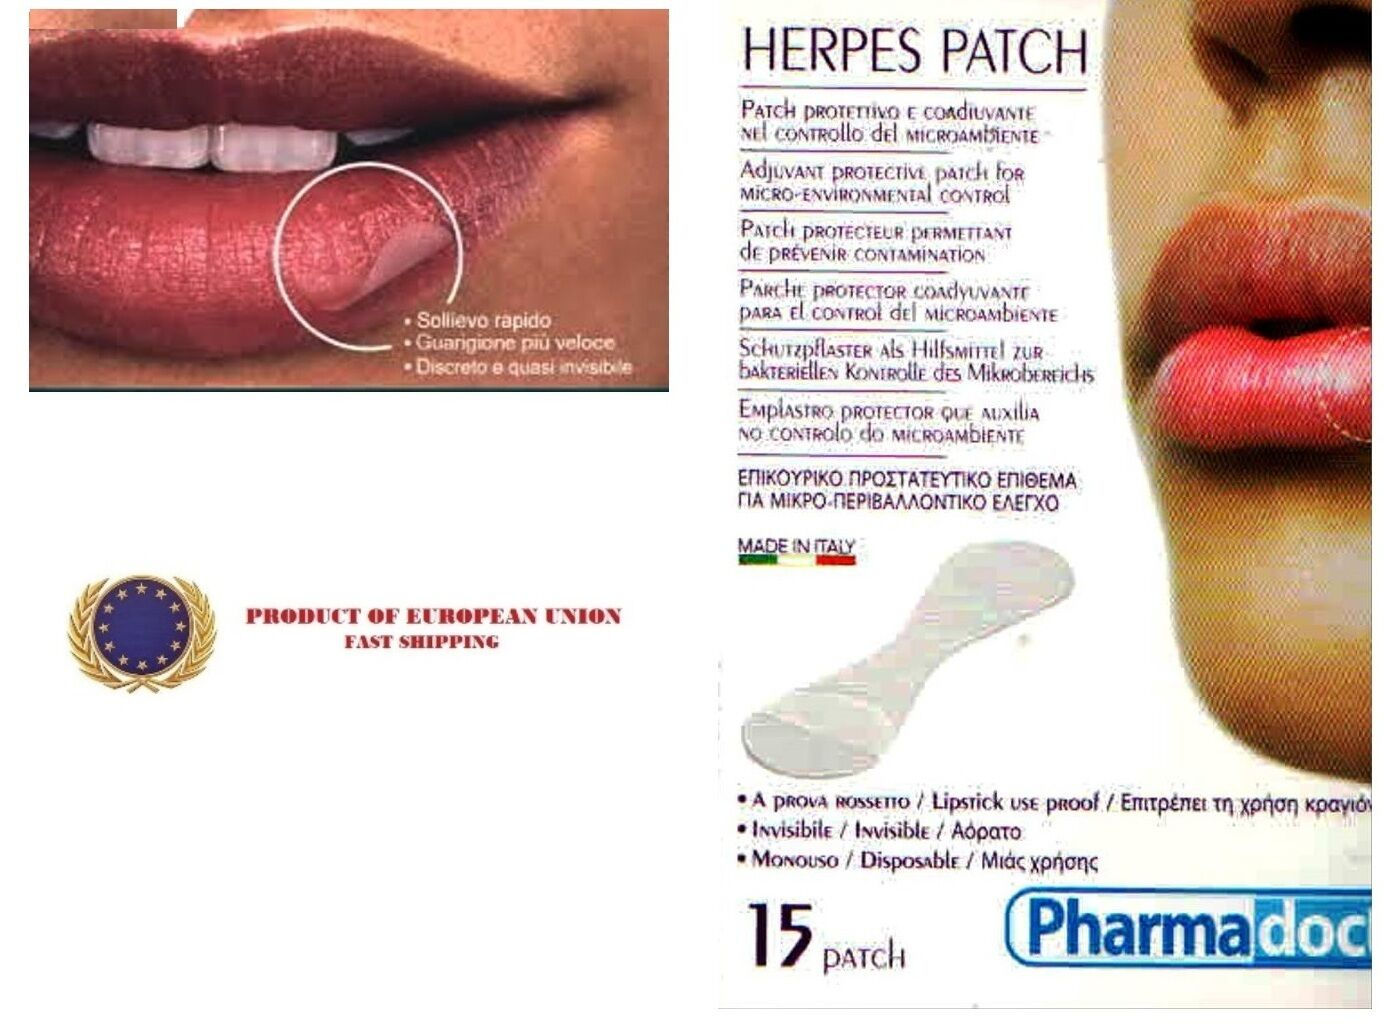 Details about *15* HERPES PATCH - Herpatch Fever Blisters -Cold Sore -  Invisable - Lipstick on